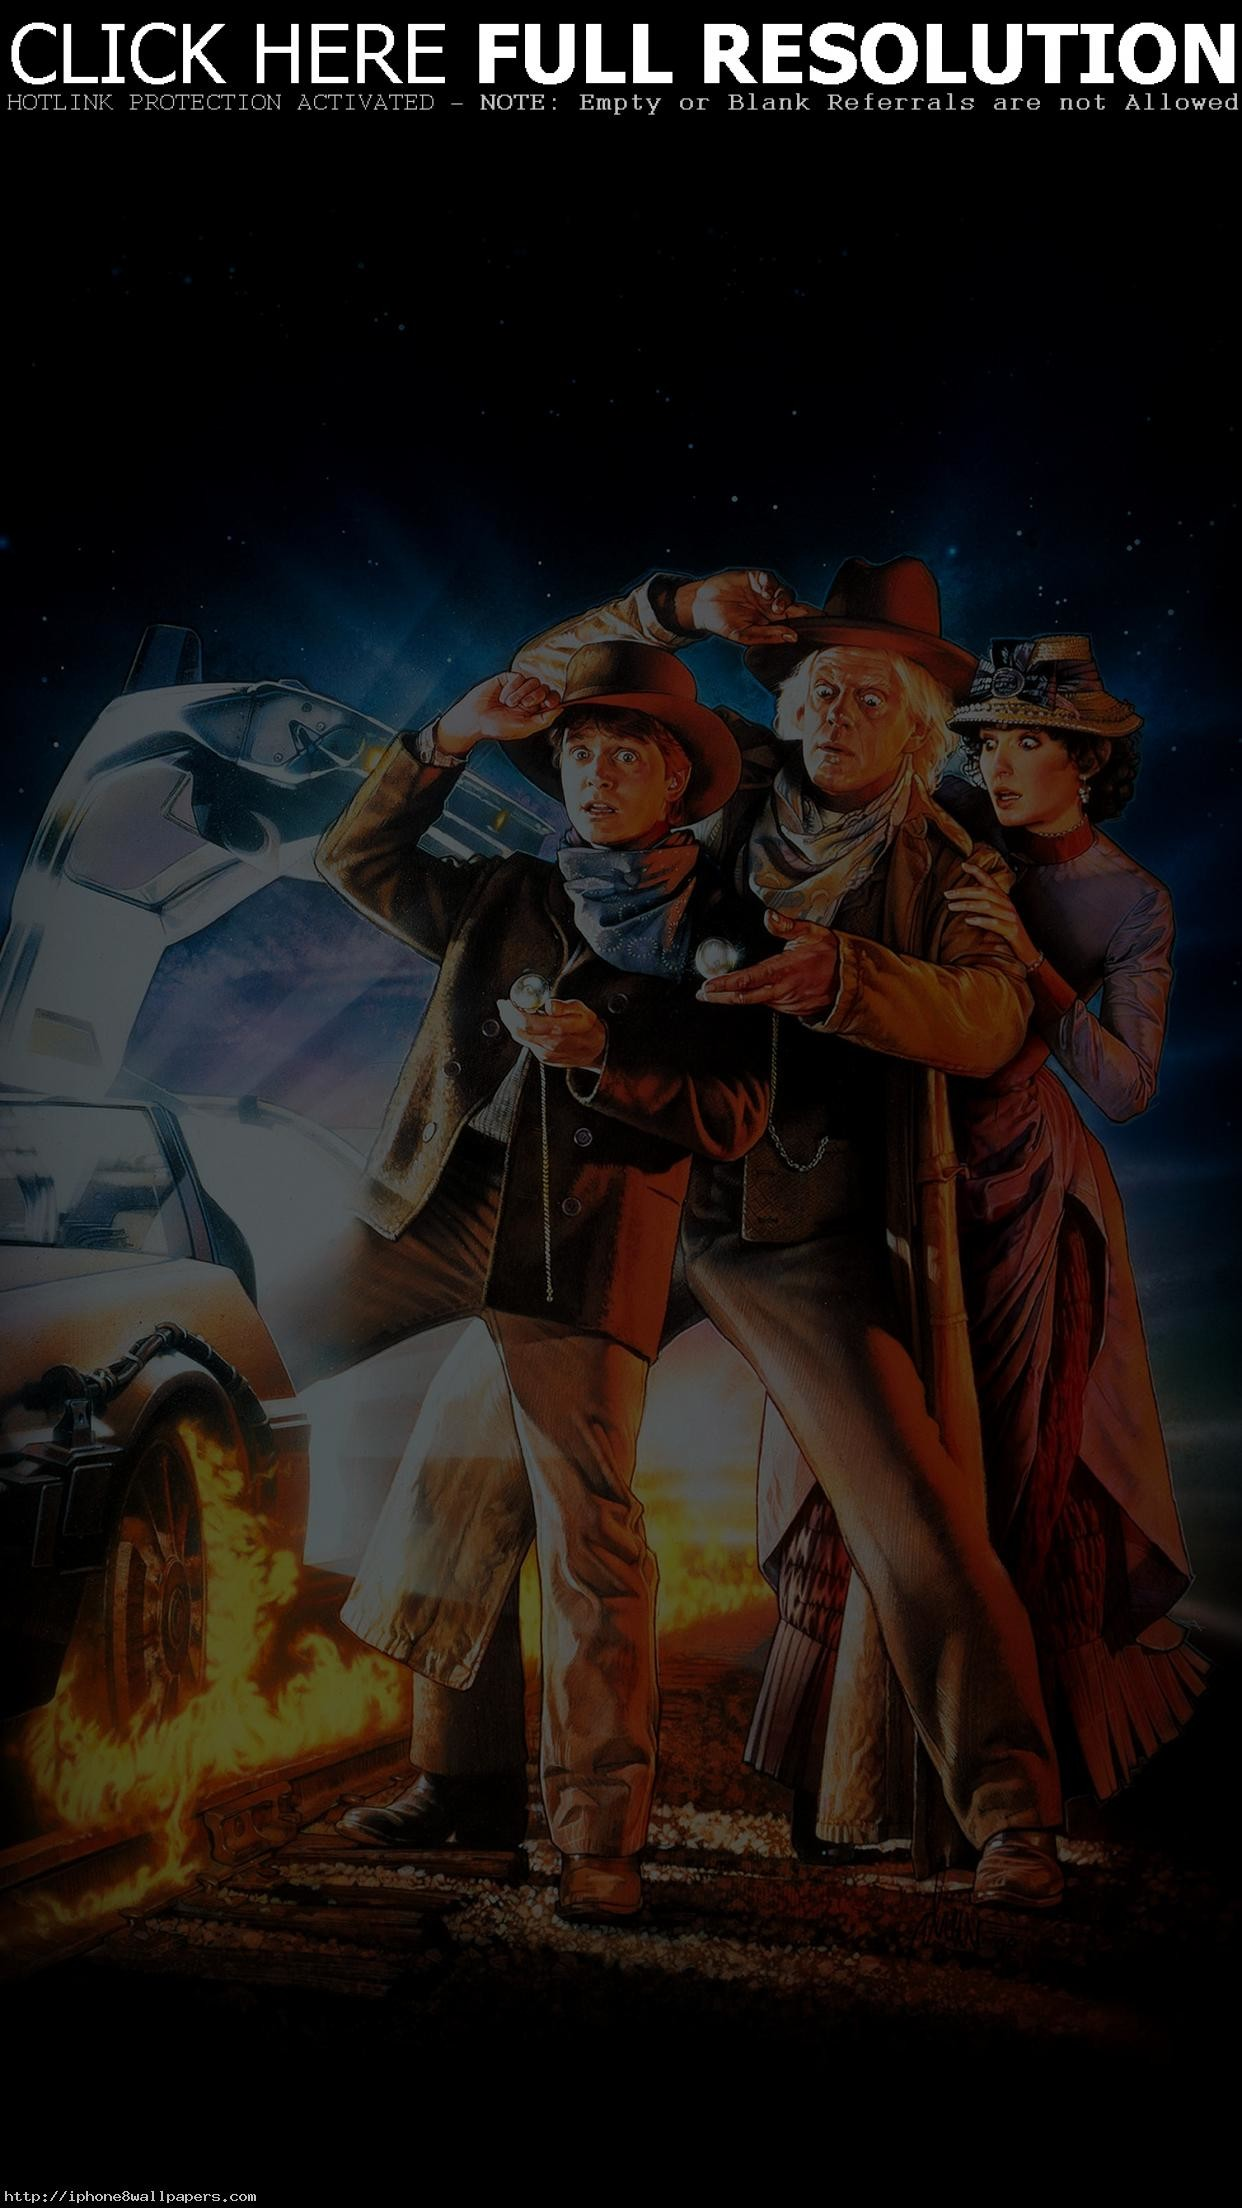 … back to the future 3 poster film art android wallpaper android …